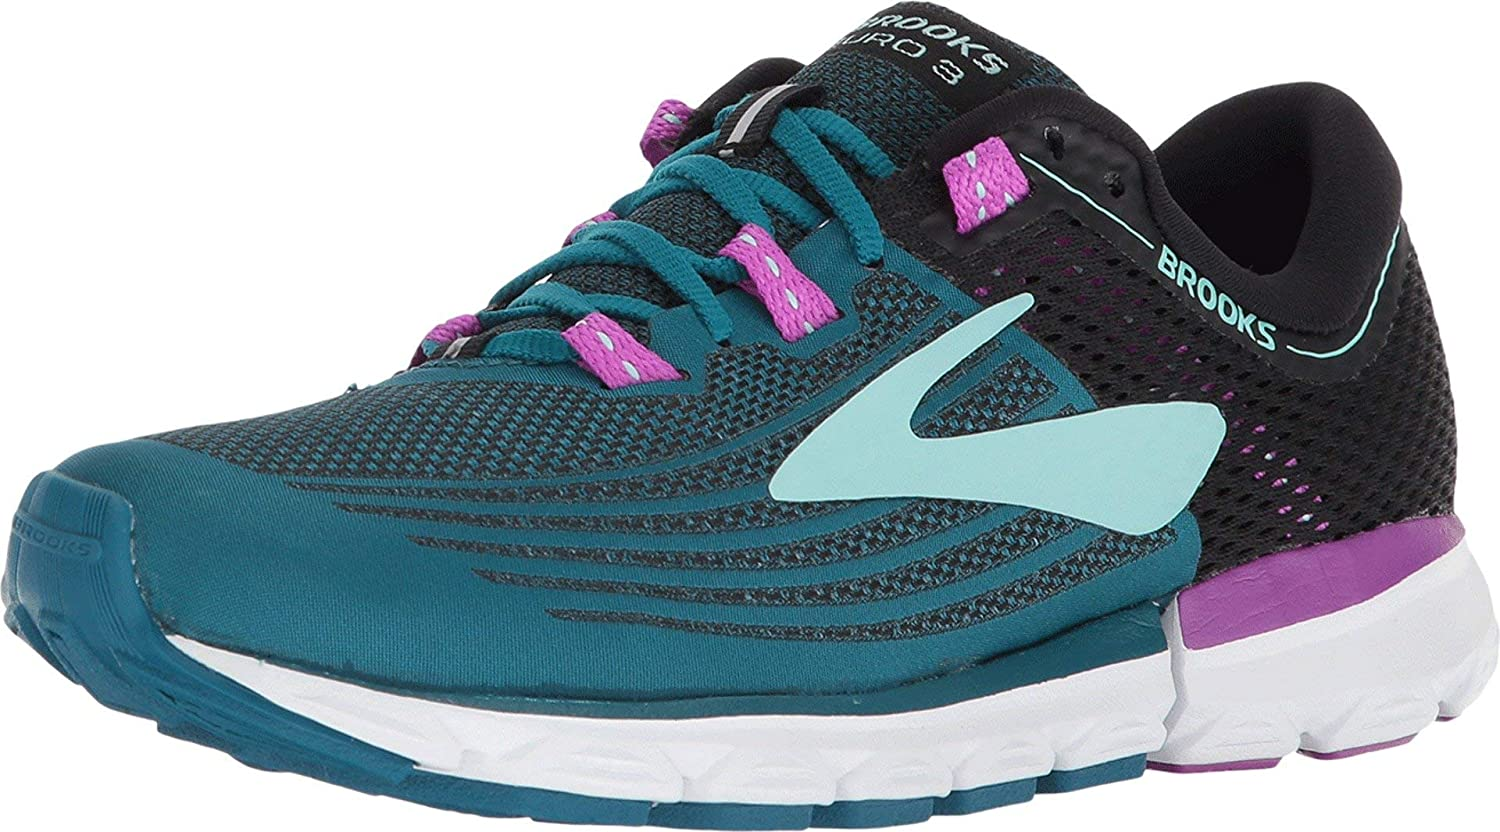 Brooks Neuro 3, Zapatillas de Running para Mujer, Multicolor (Lagoon/Black/Purple 329), 36 EU: Amazon.es: Zapatos y complementos